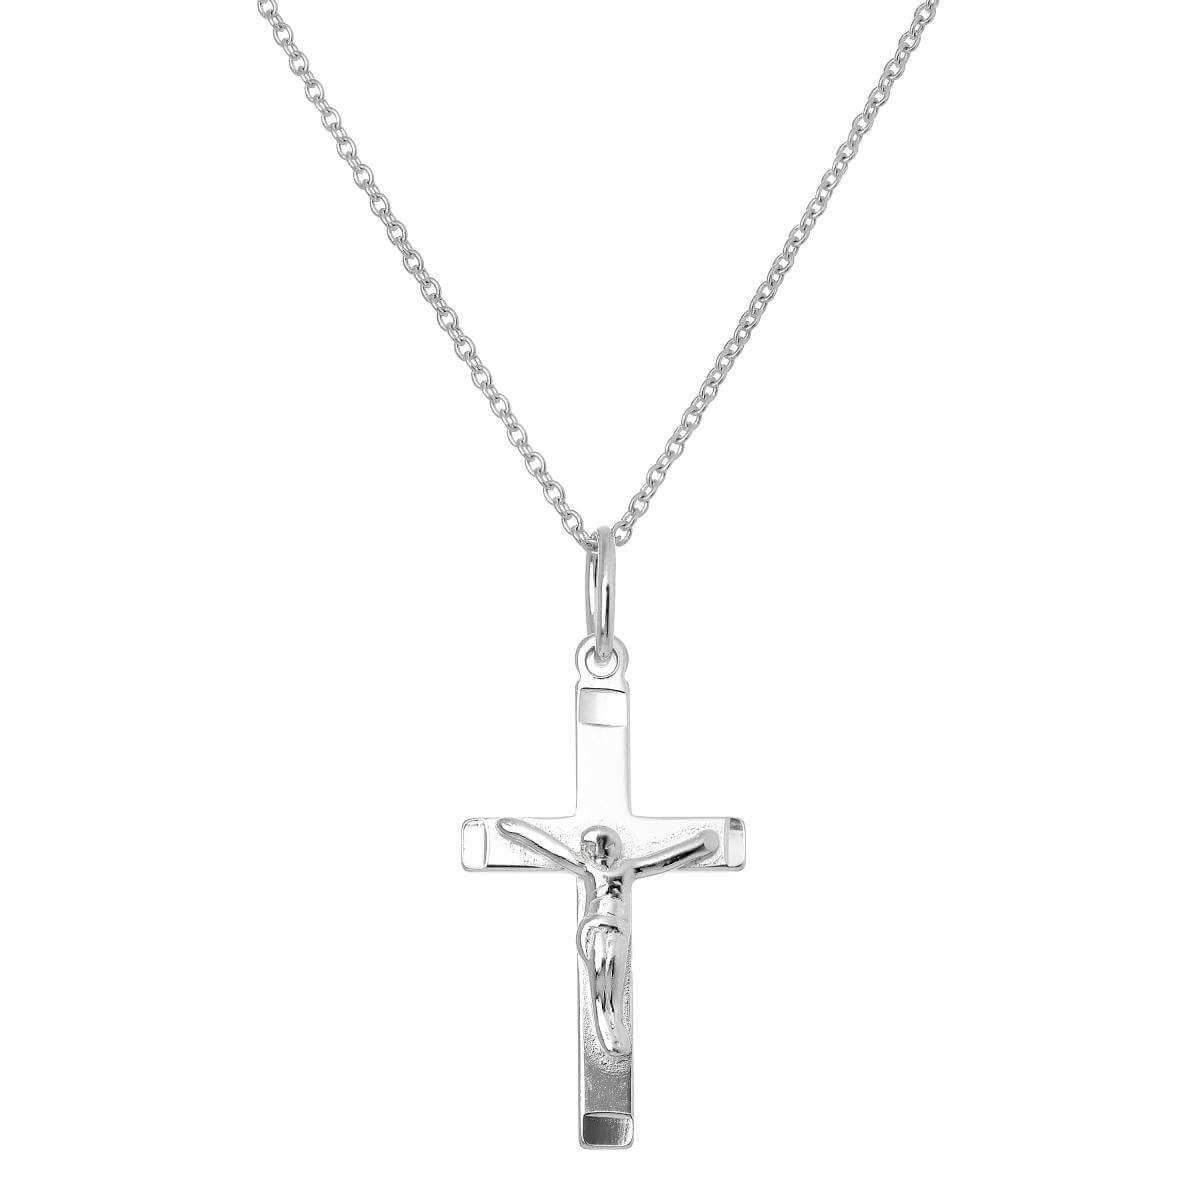 Sterling Silver Crucifix Cross Pendant Necklace 16 - 22 Inches